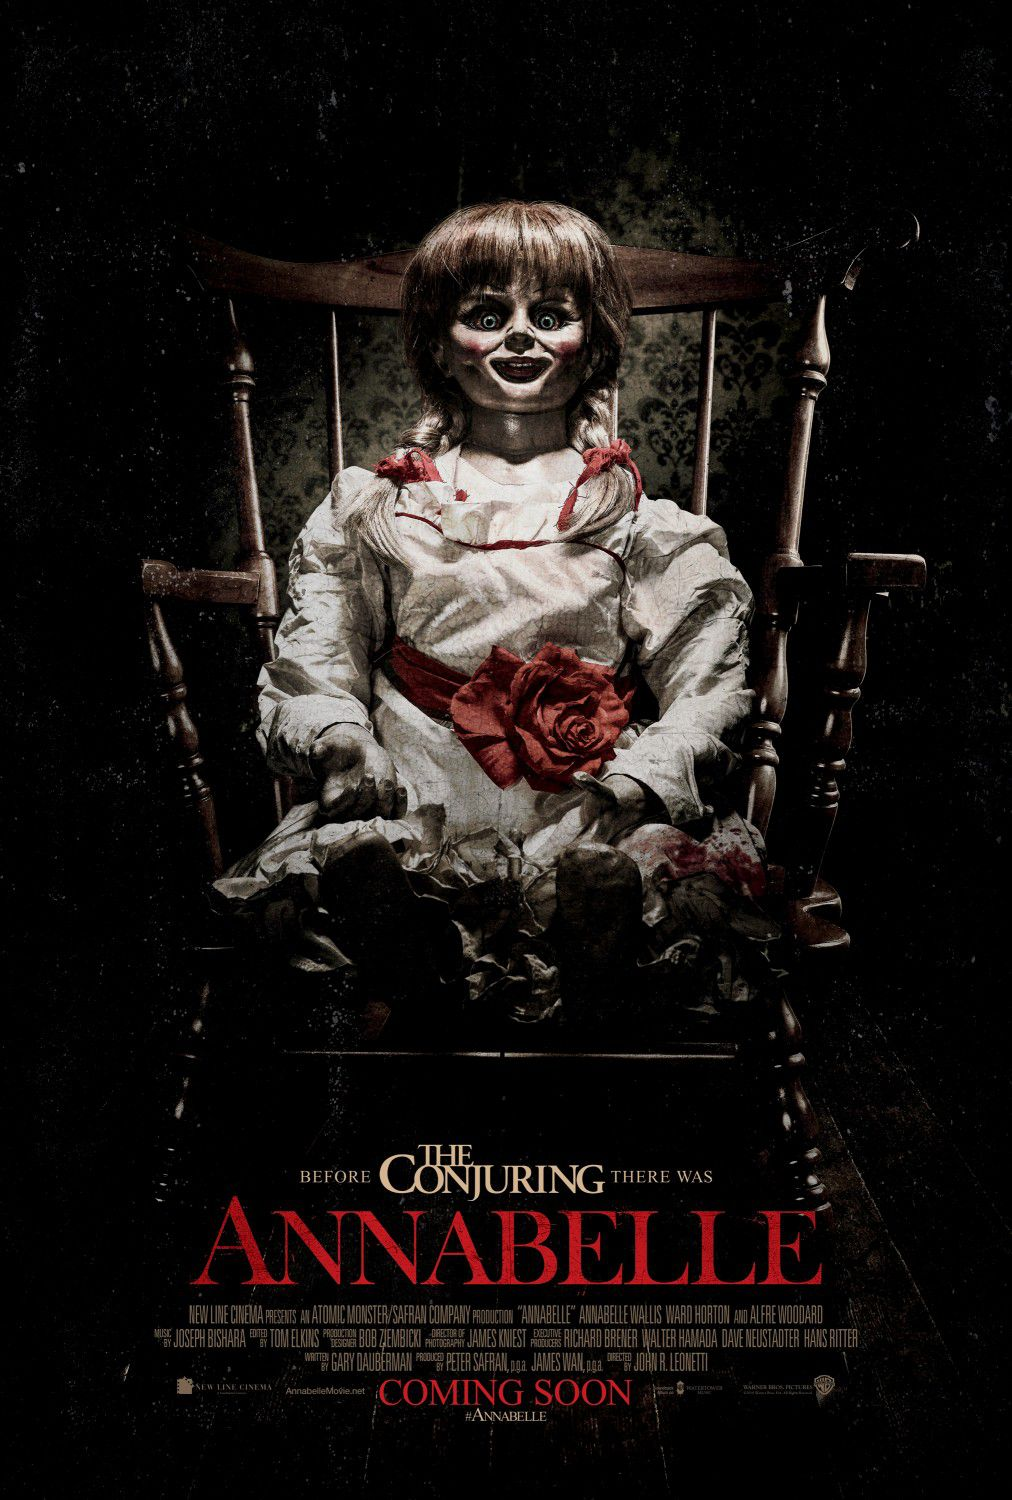 Annabelle - horror poster - scary assassin doll